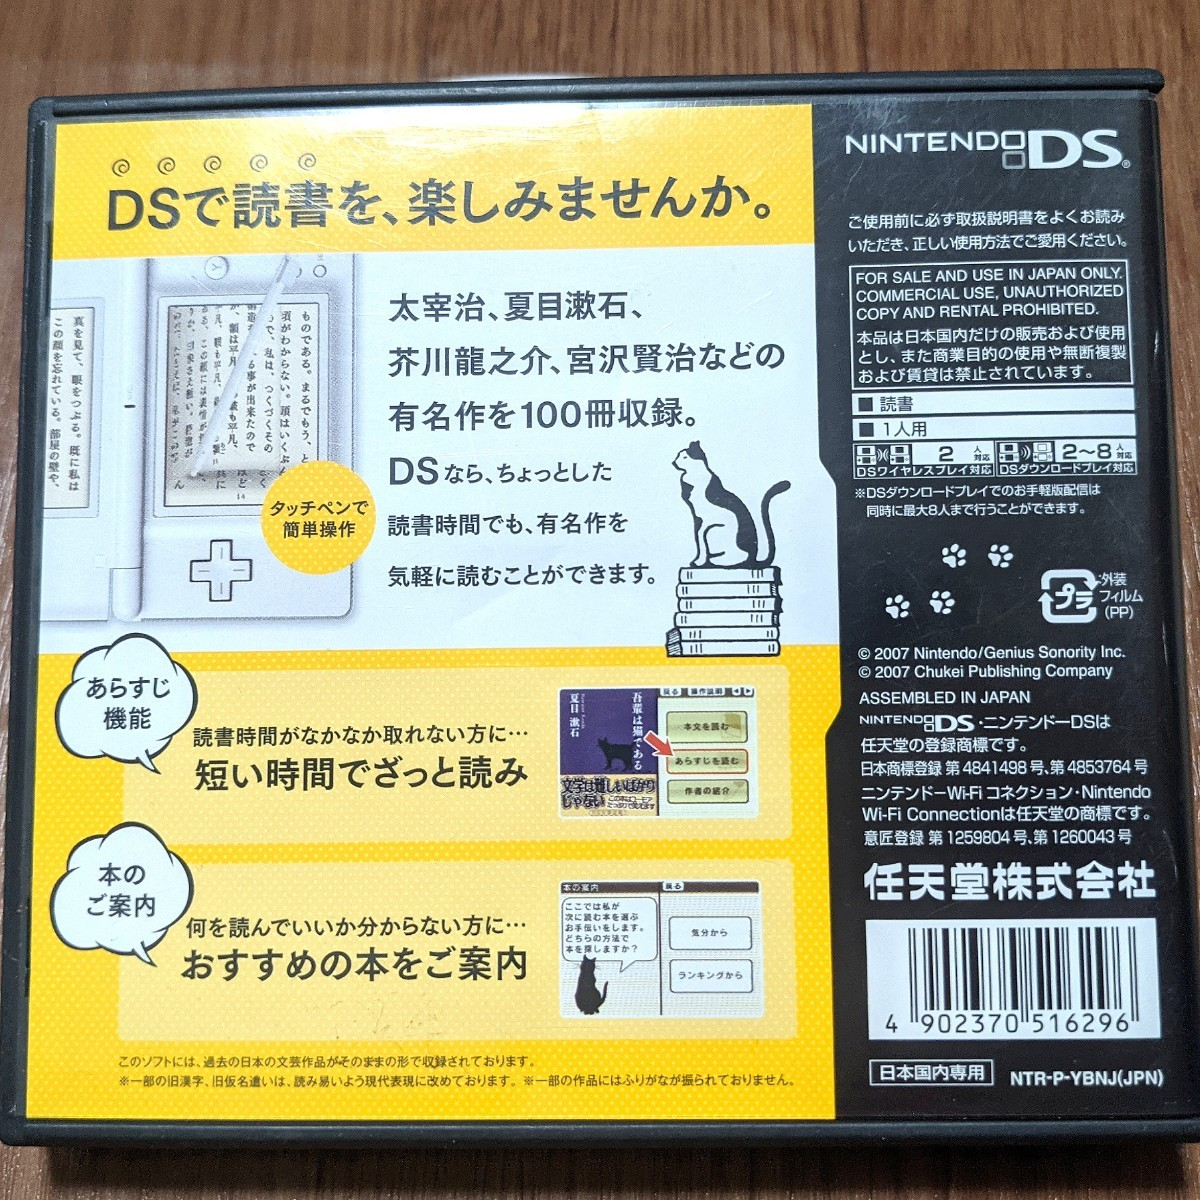 DSソフト DS文学全集 任天堂